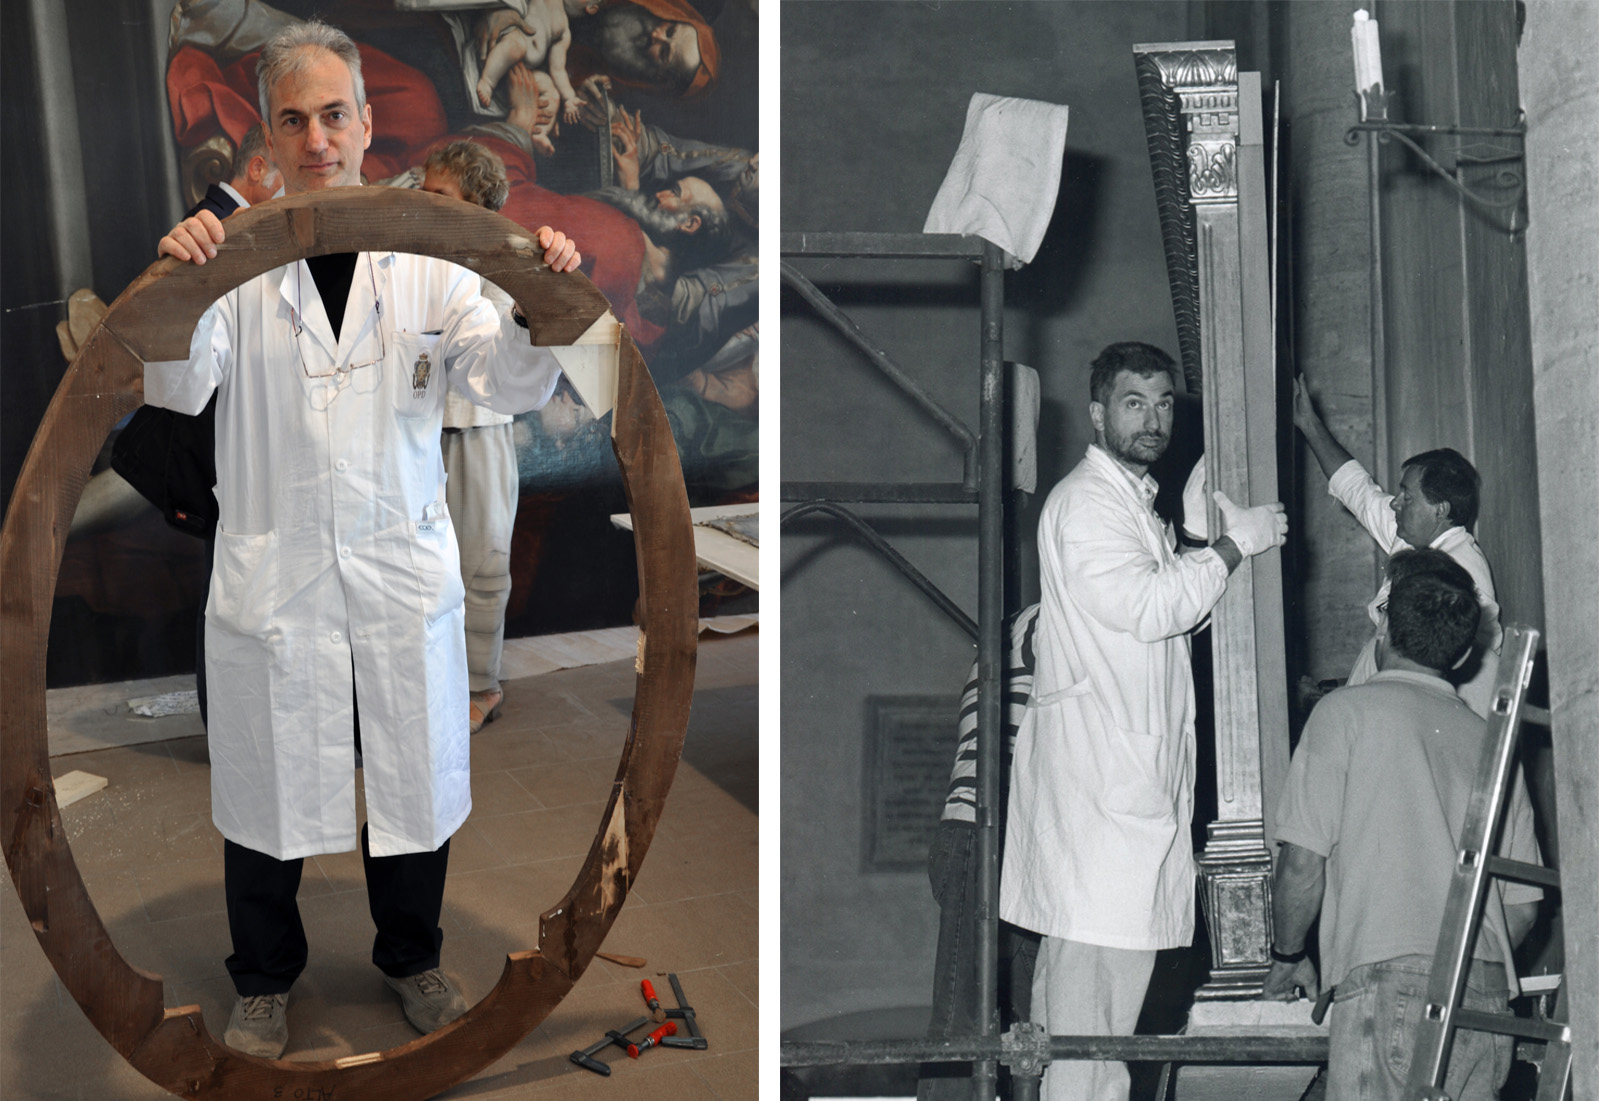 Left: Man holding wood brace for painting. Right: A photo from 1998 of the same man working on conserving a wood panel painting.